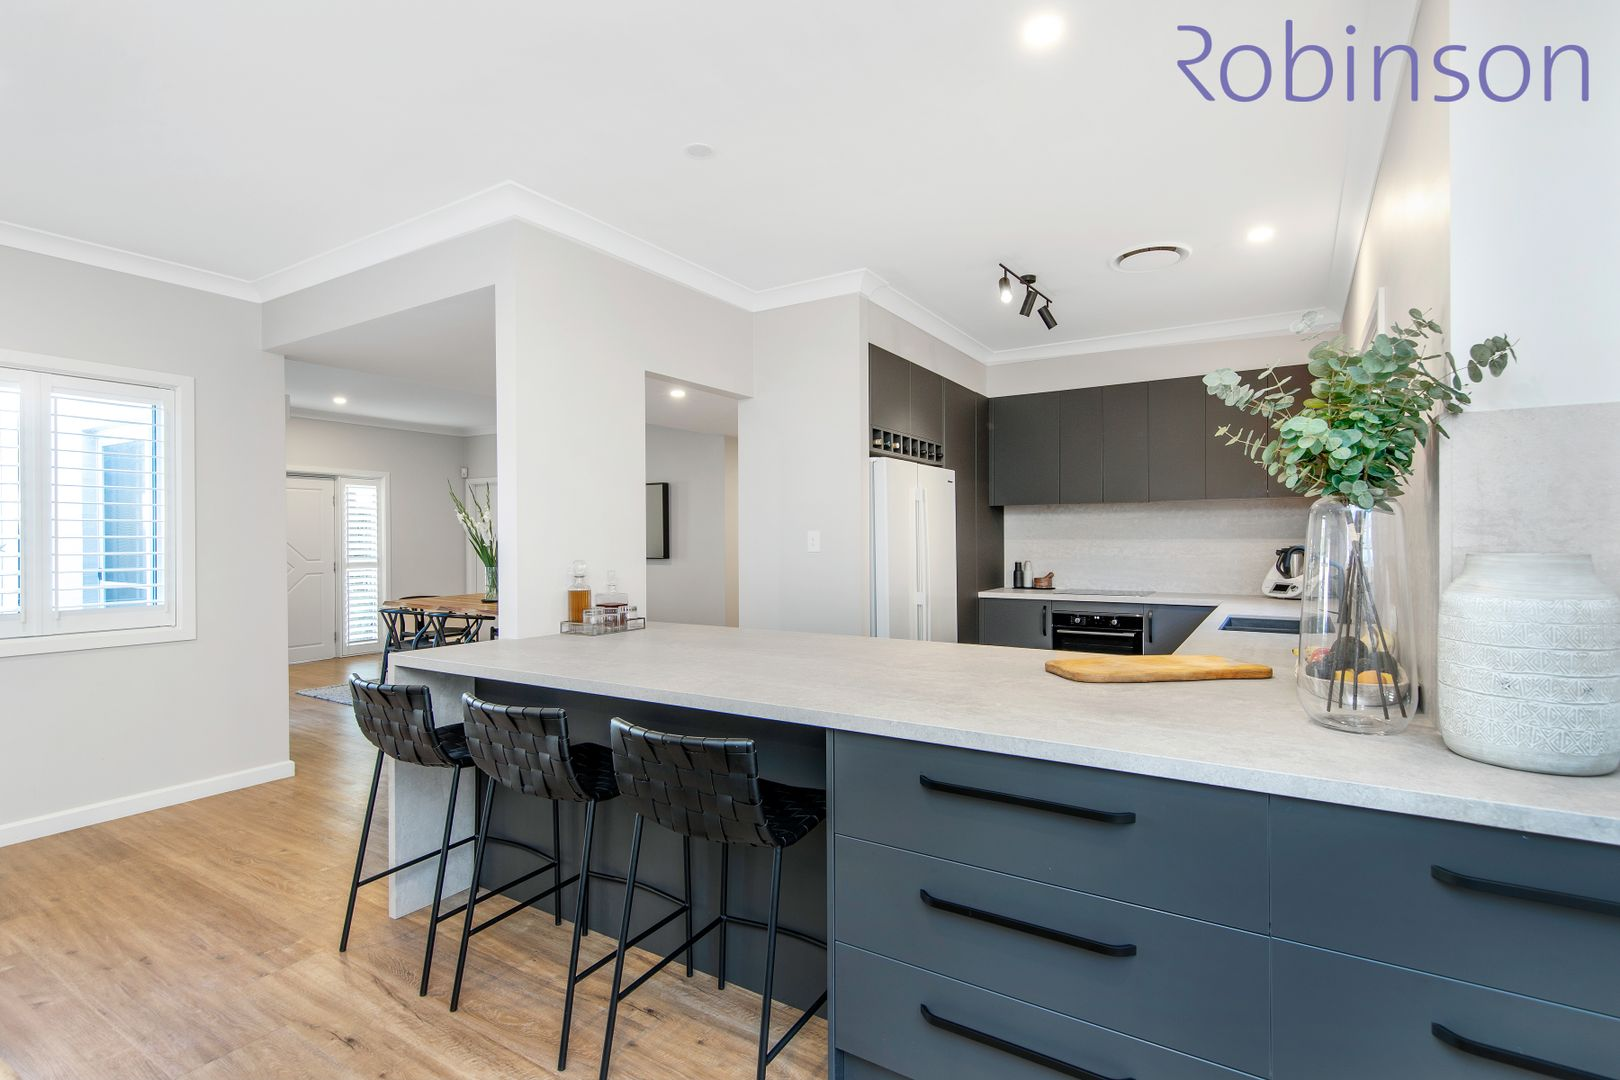 15/1 Queen Street, The Hill NSW 2300, Image 1